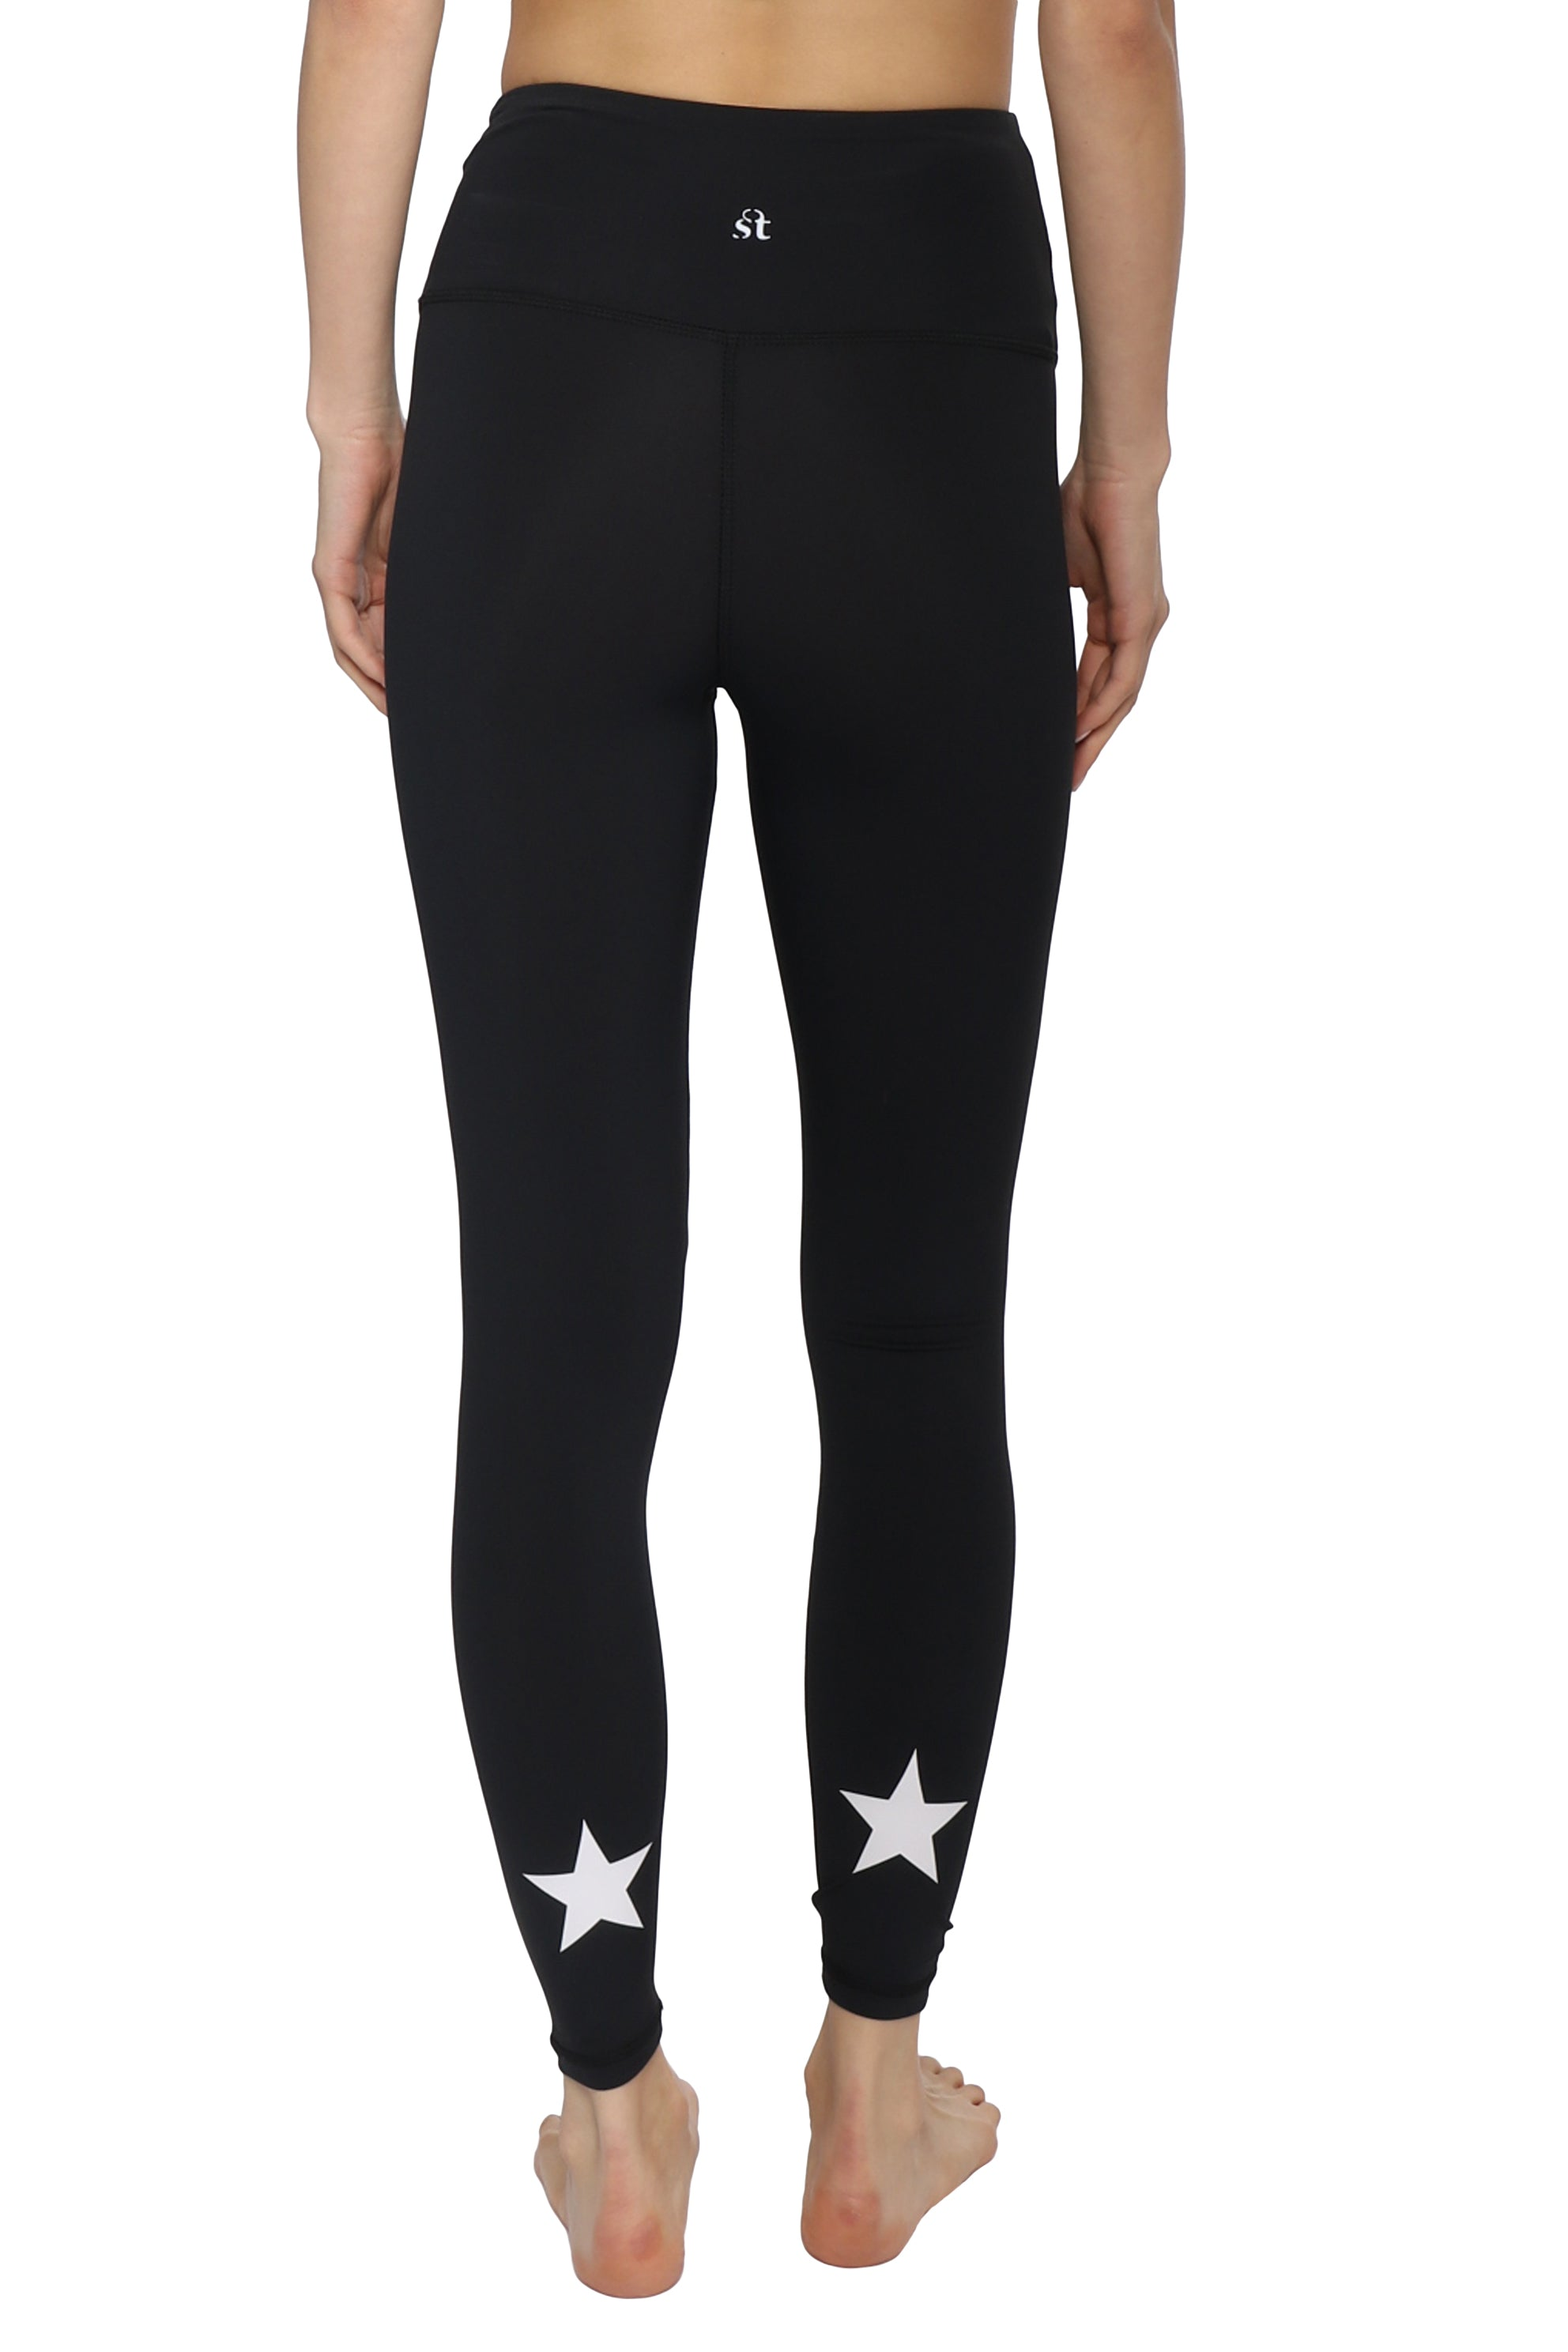 c9c96de0dbe2f Strut-This - Bottoms, Leggings, Tops, and Sports Bras | Mixology